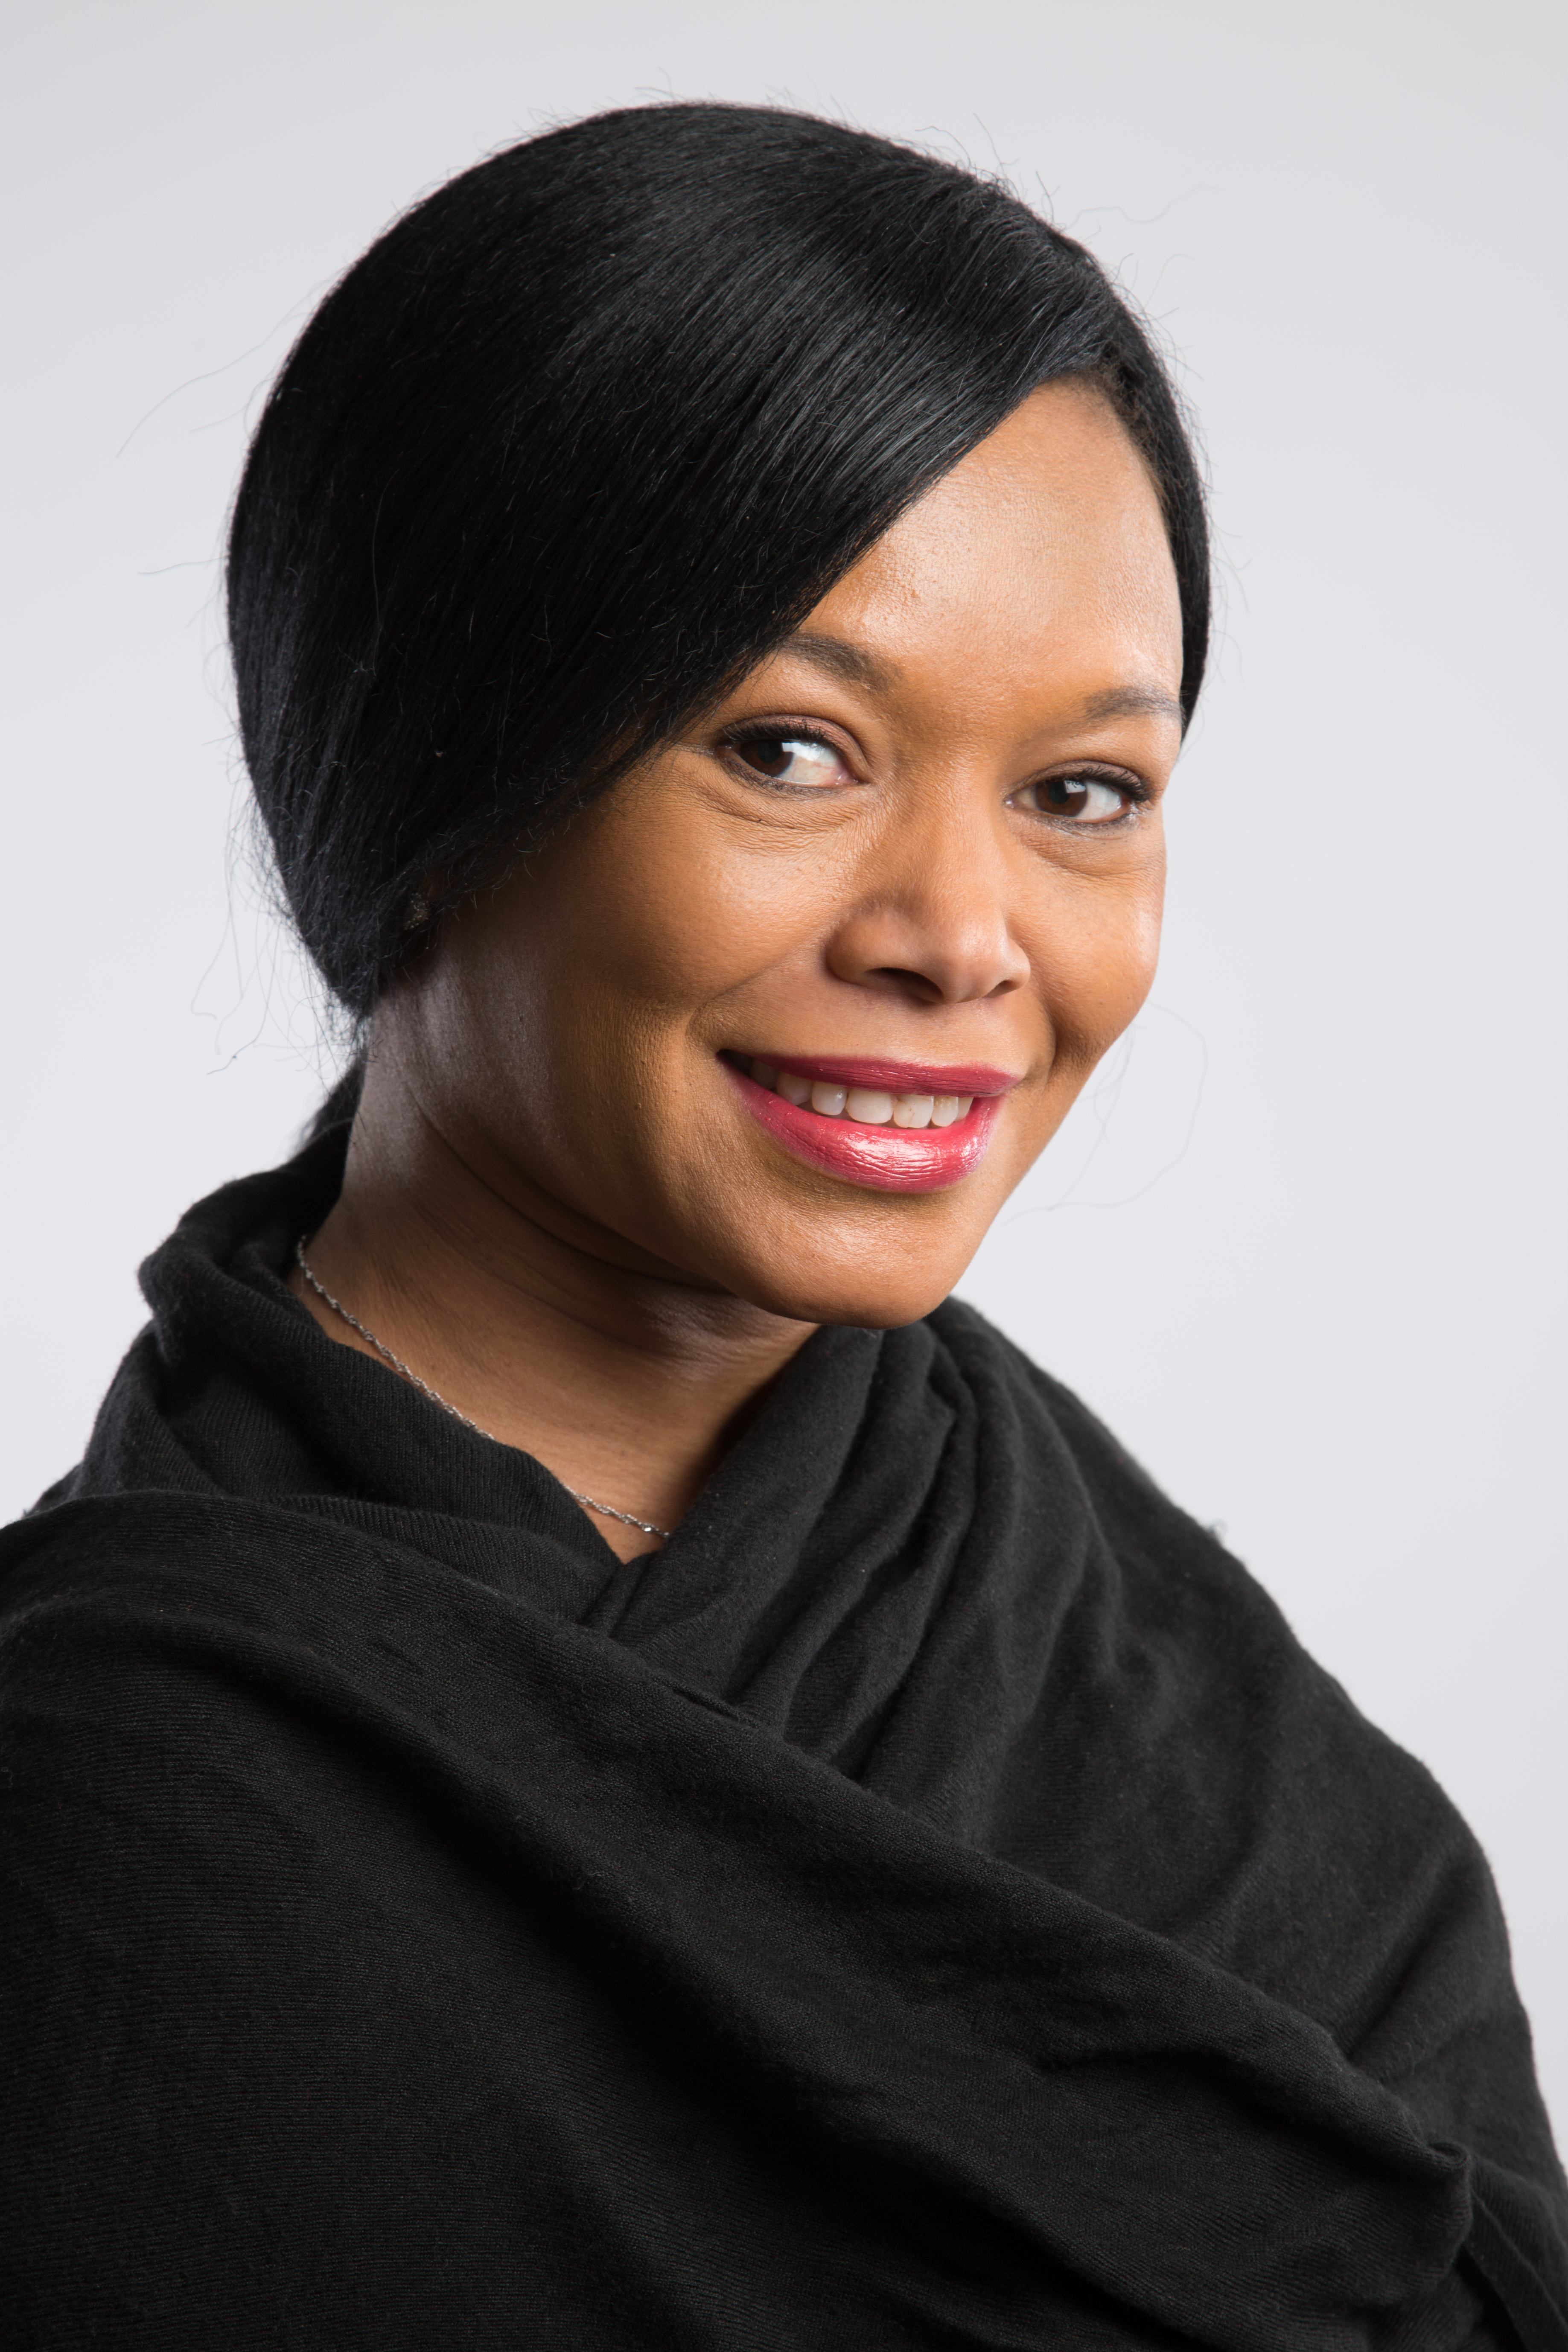 Busisiwe Ndlovu - TLIU TEAM